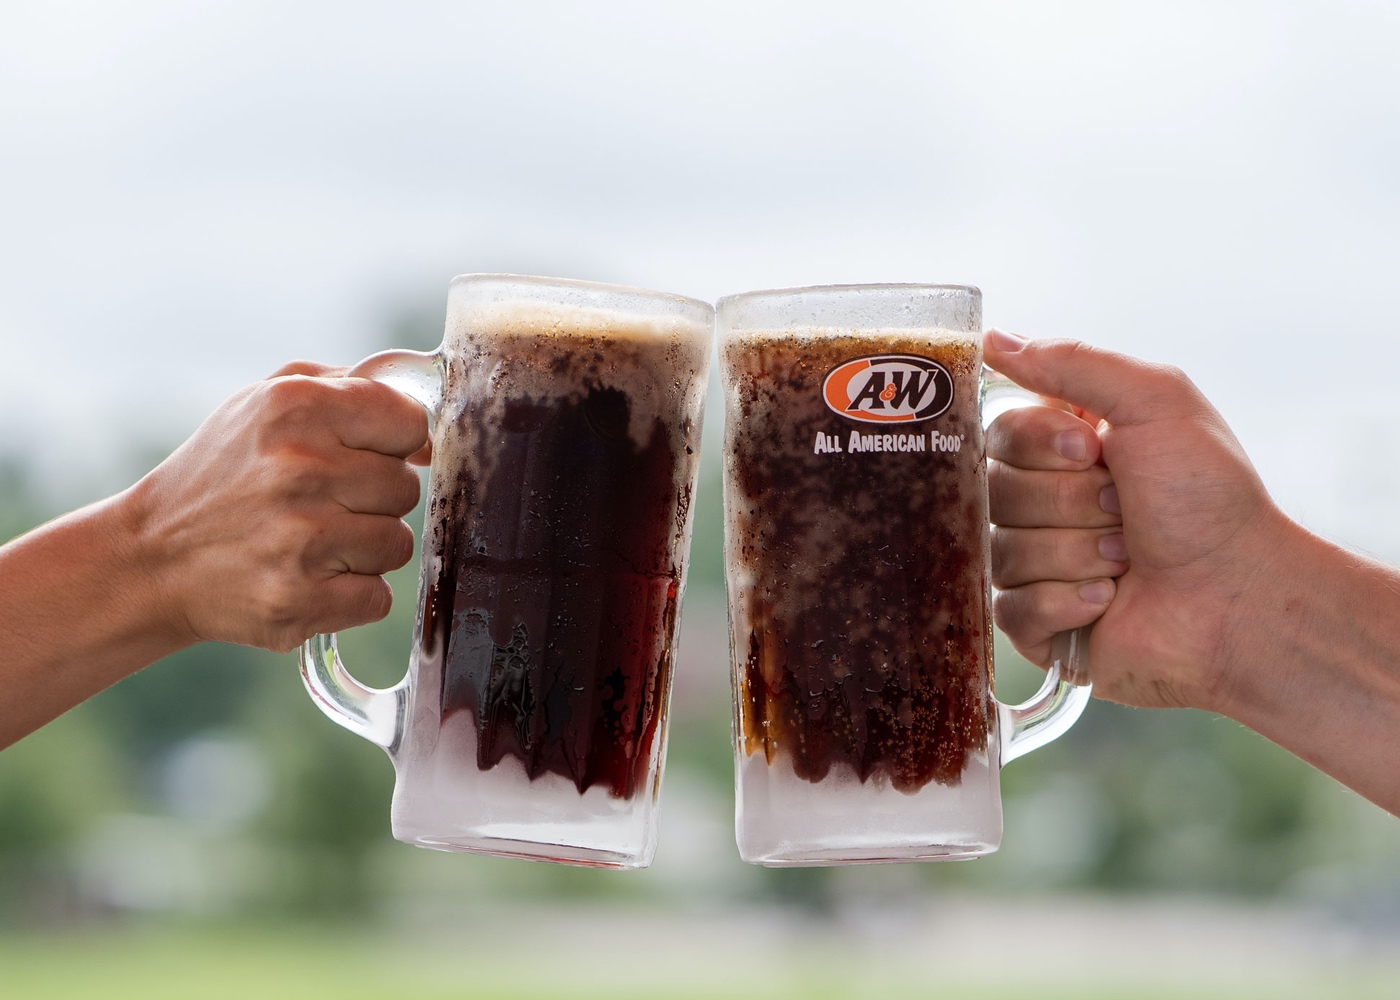 Two people clinking mugs of root beer together.